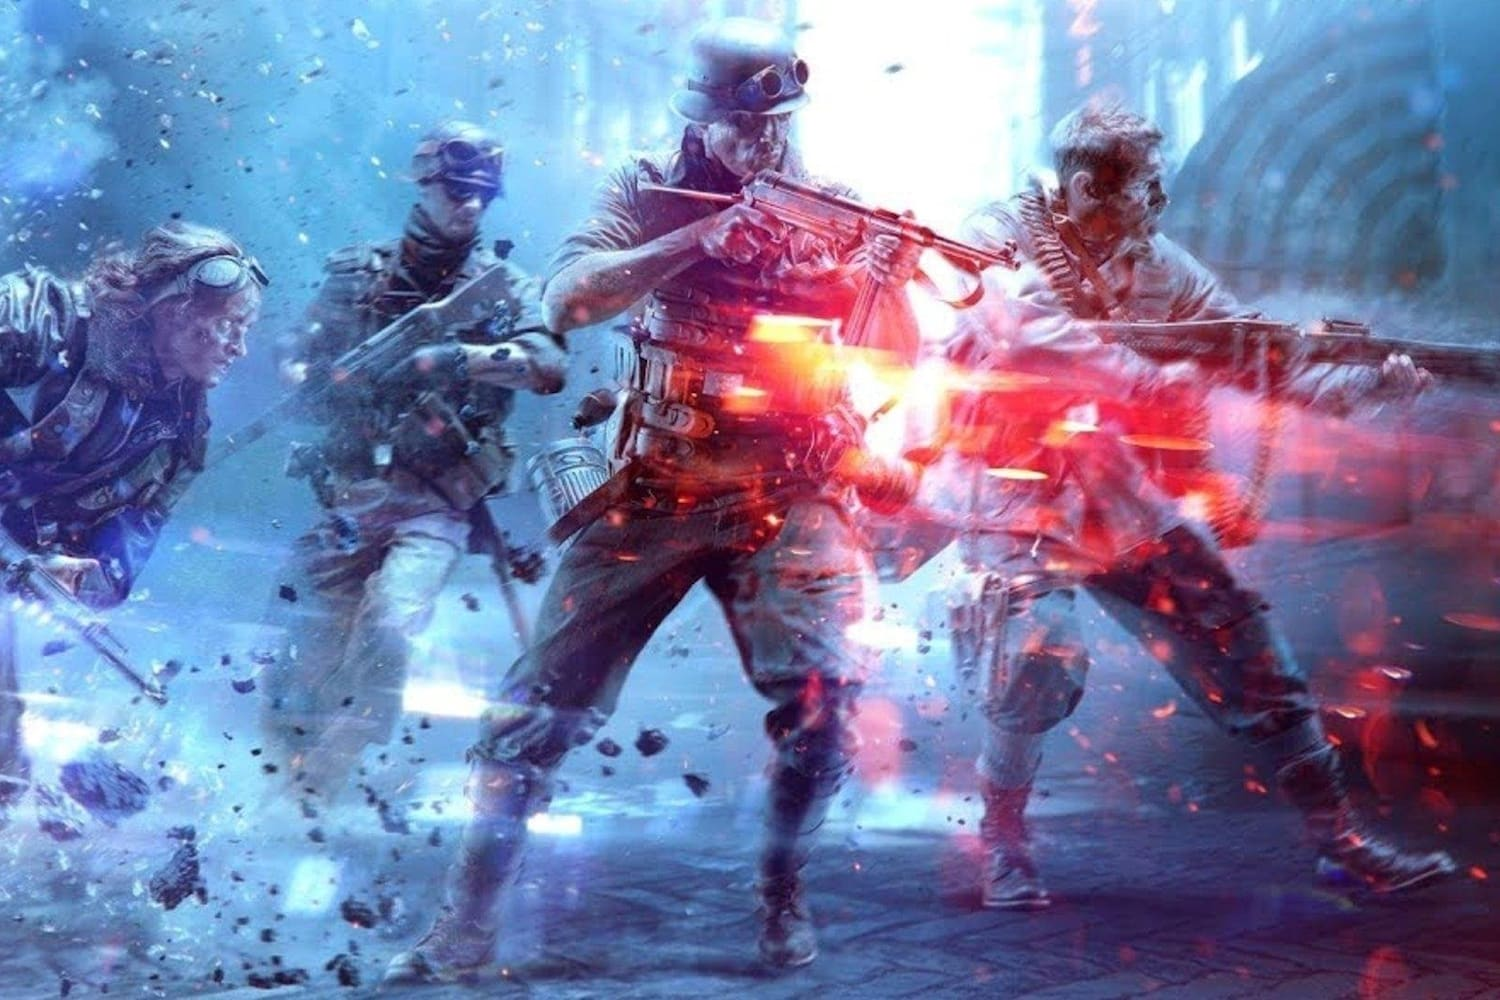 Battlefield 5 multiplayer tips: 5 to help you win